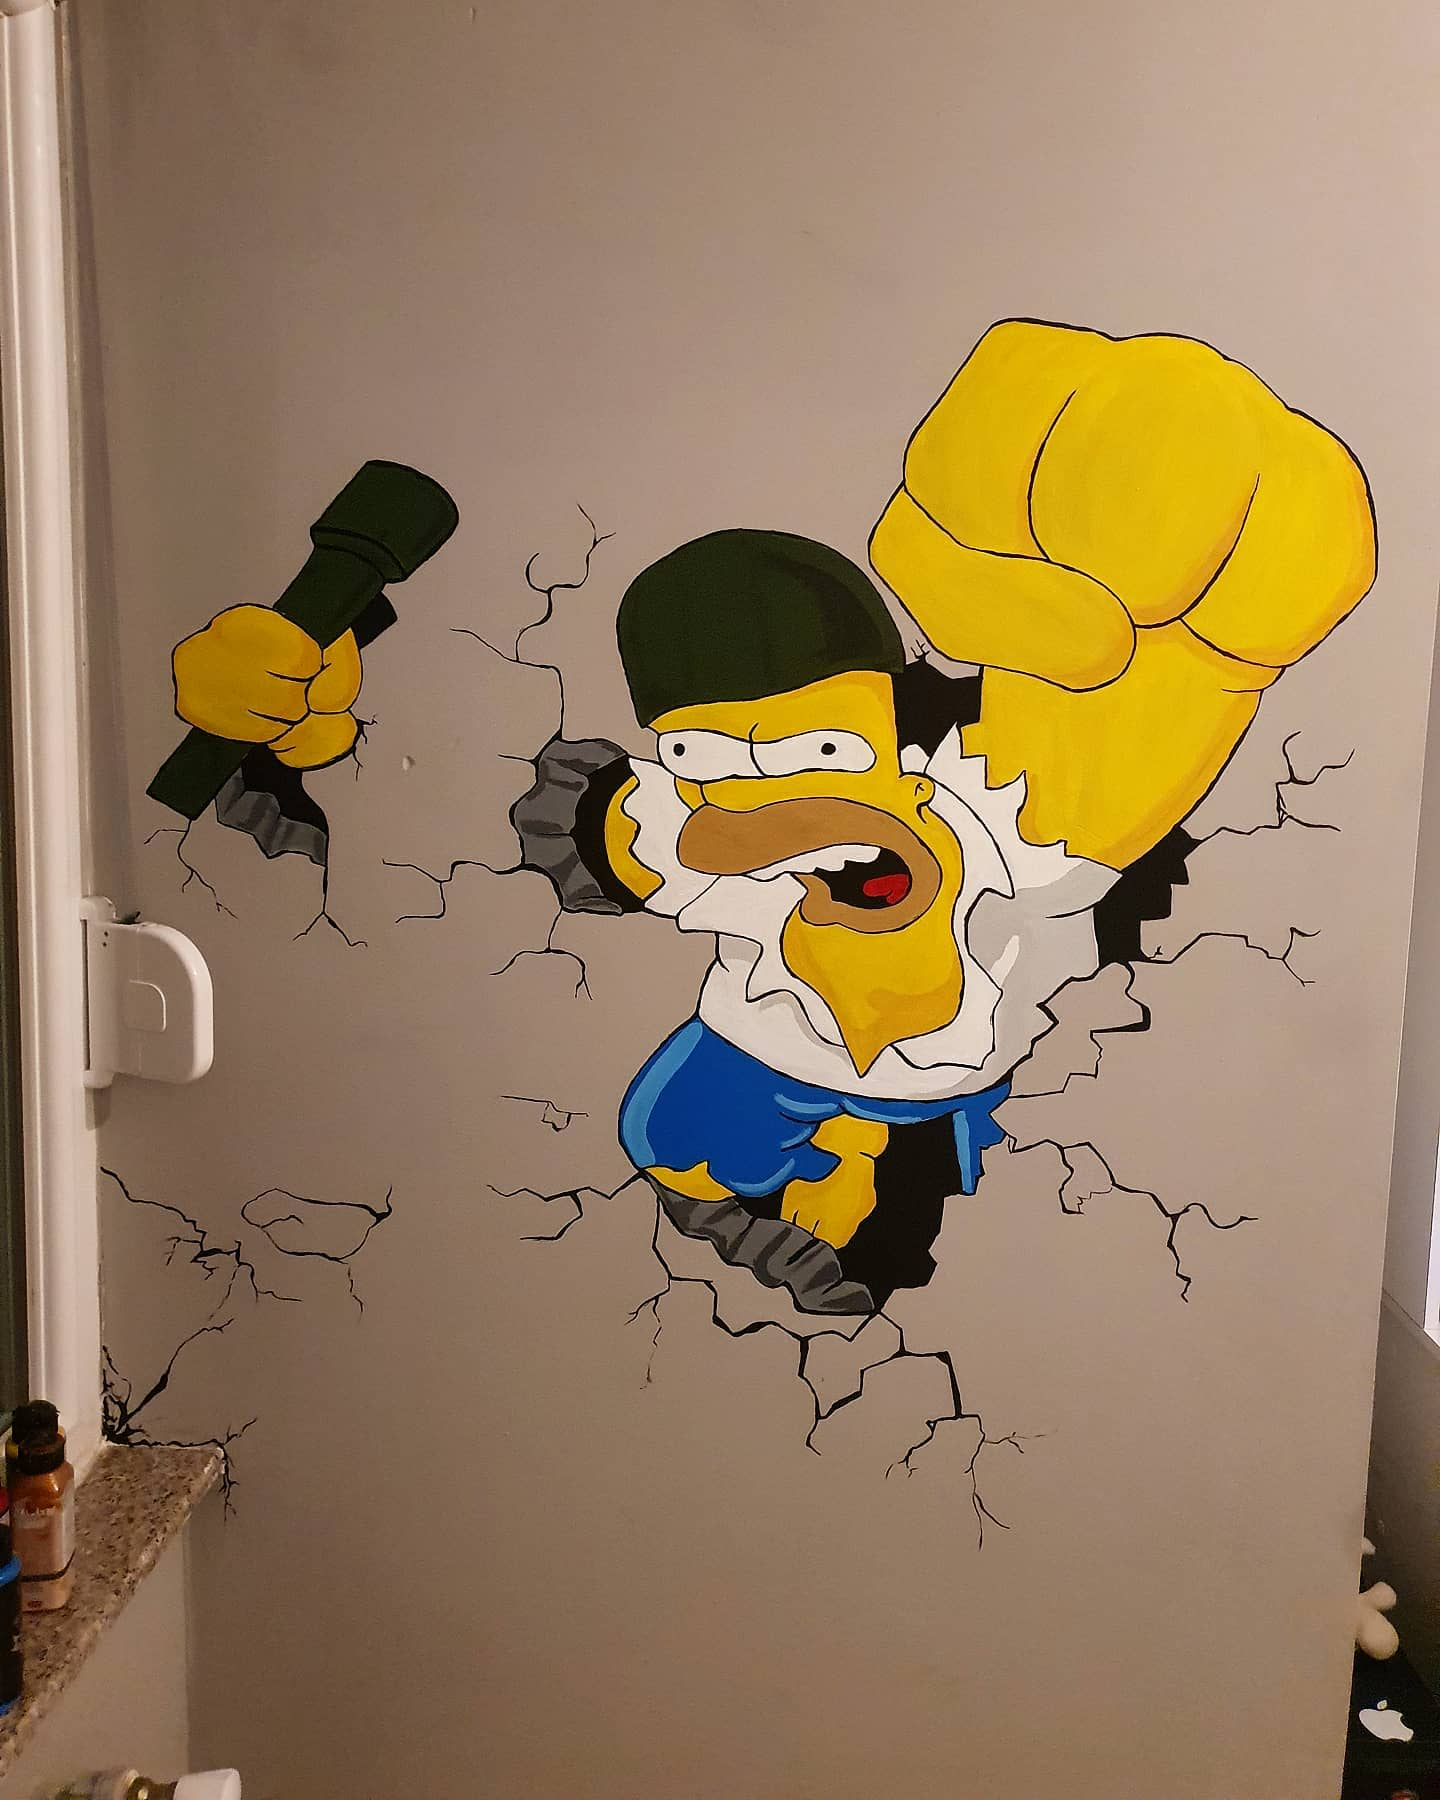 3D Wall Painting Ideas -e.dgngl